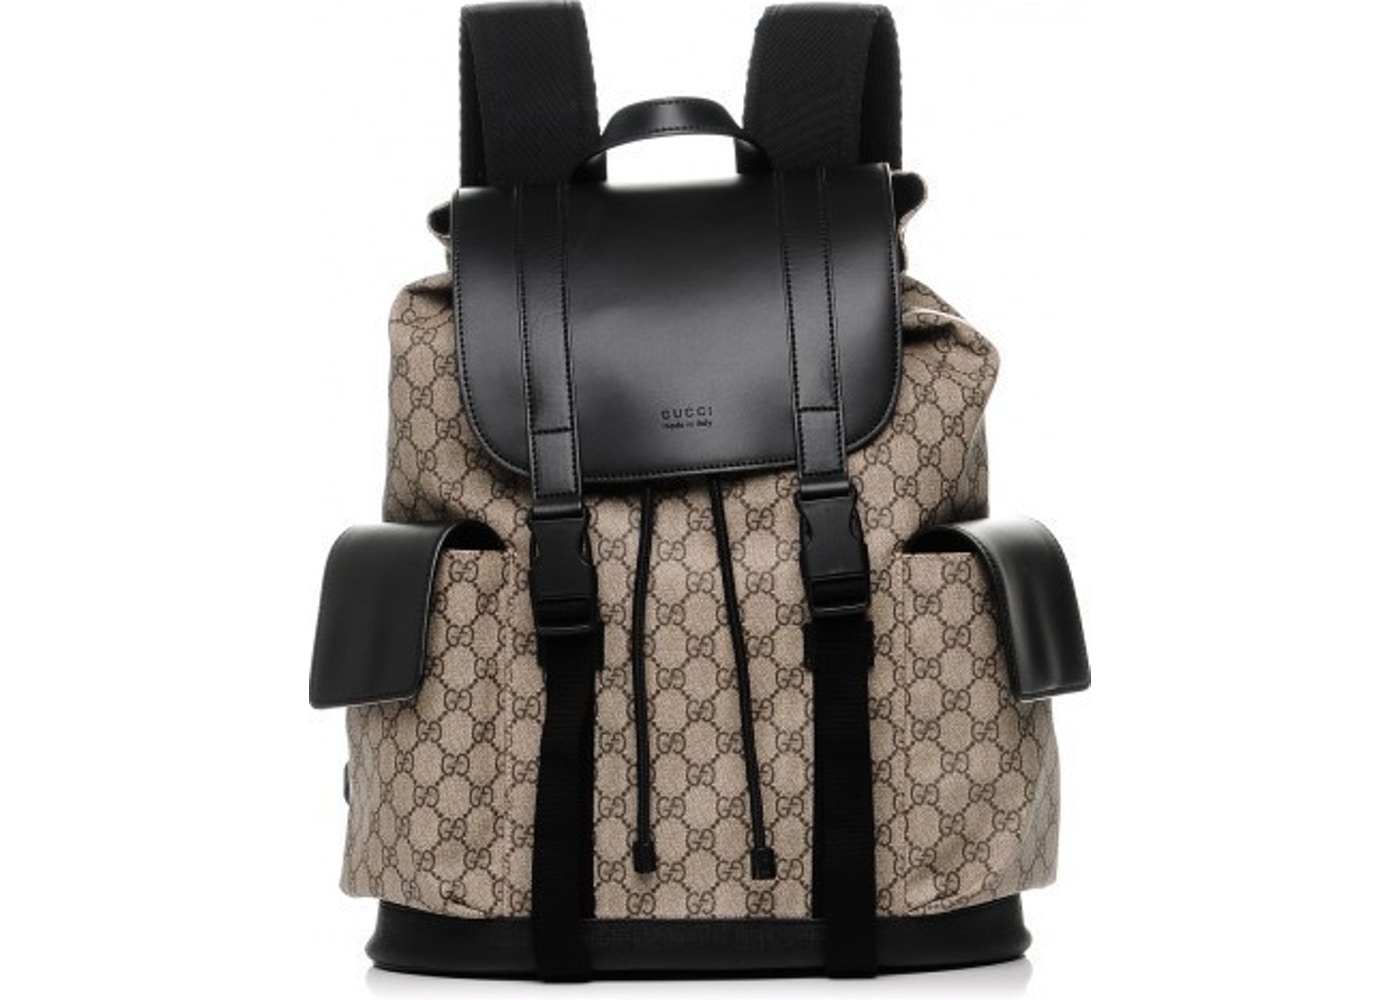 98f1884fe539 Gucci Soft Backpack Monogram GG Black Brown